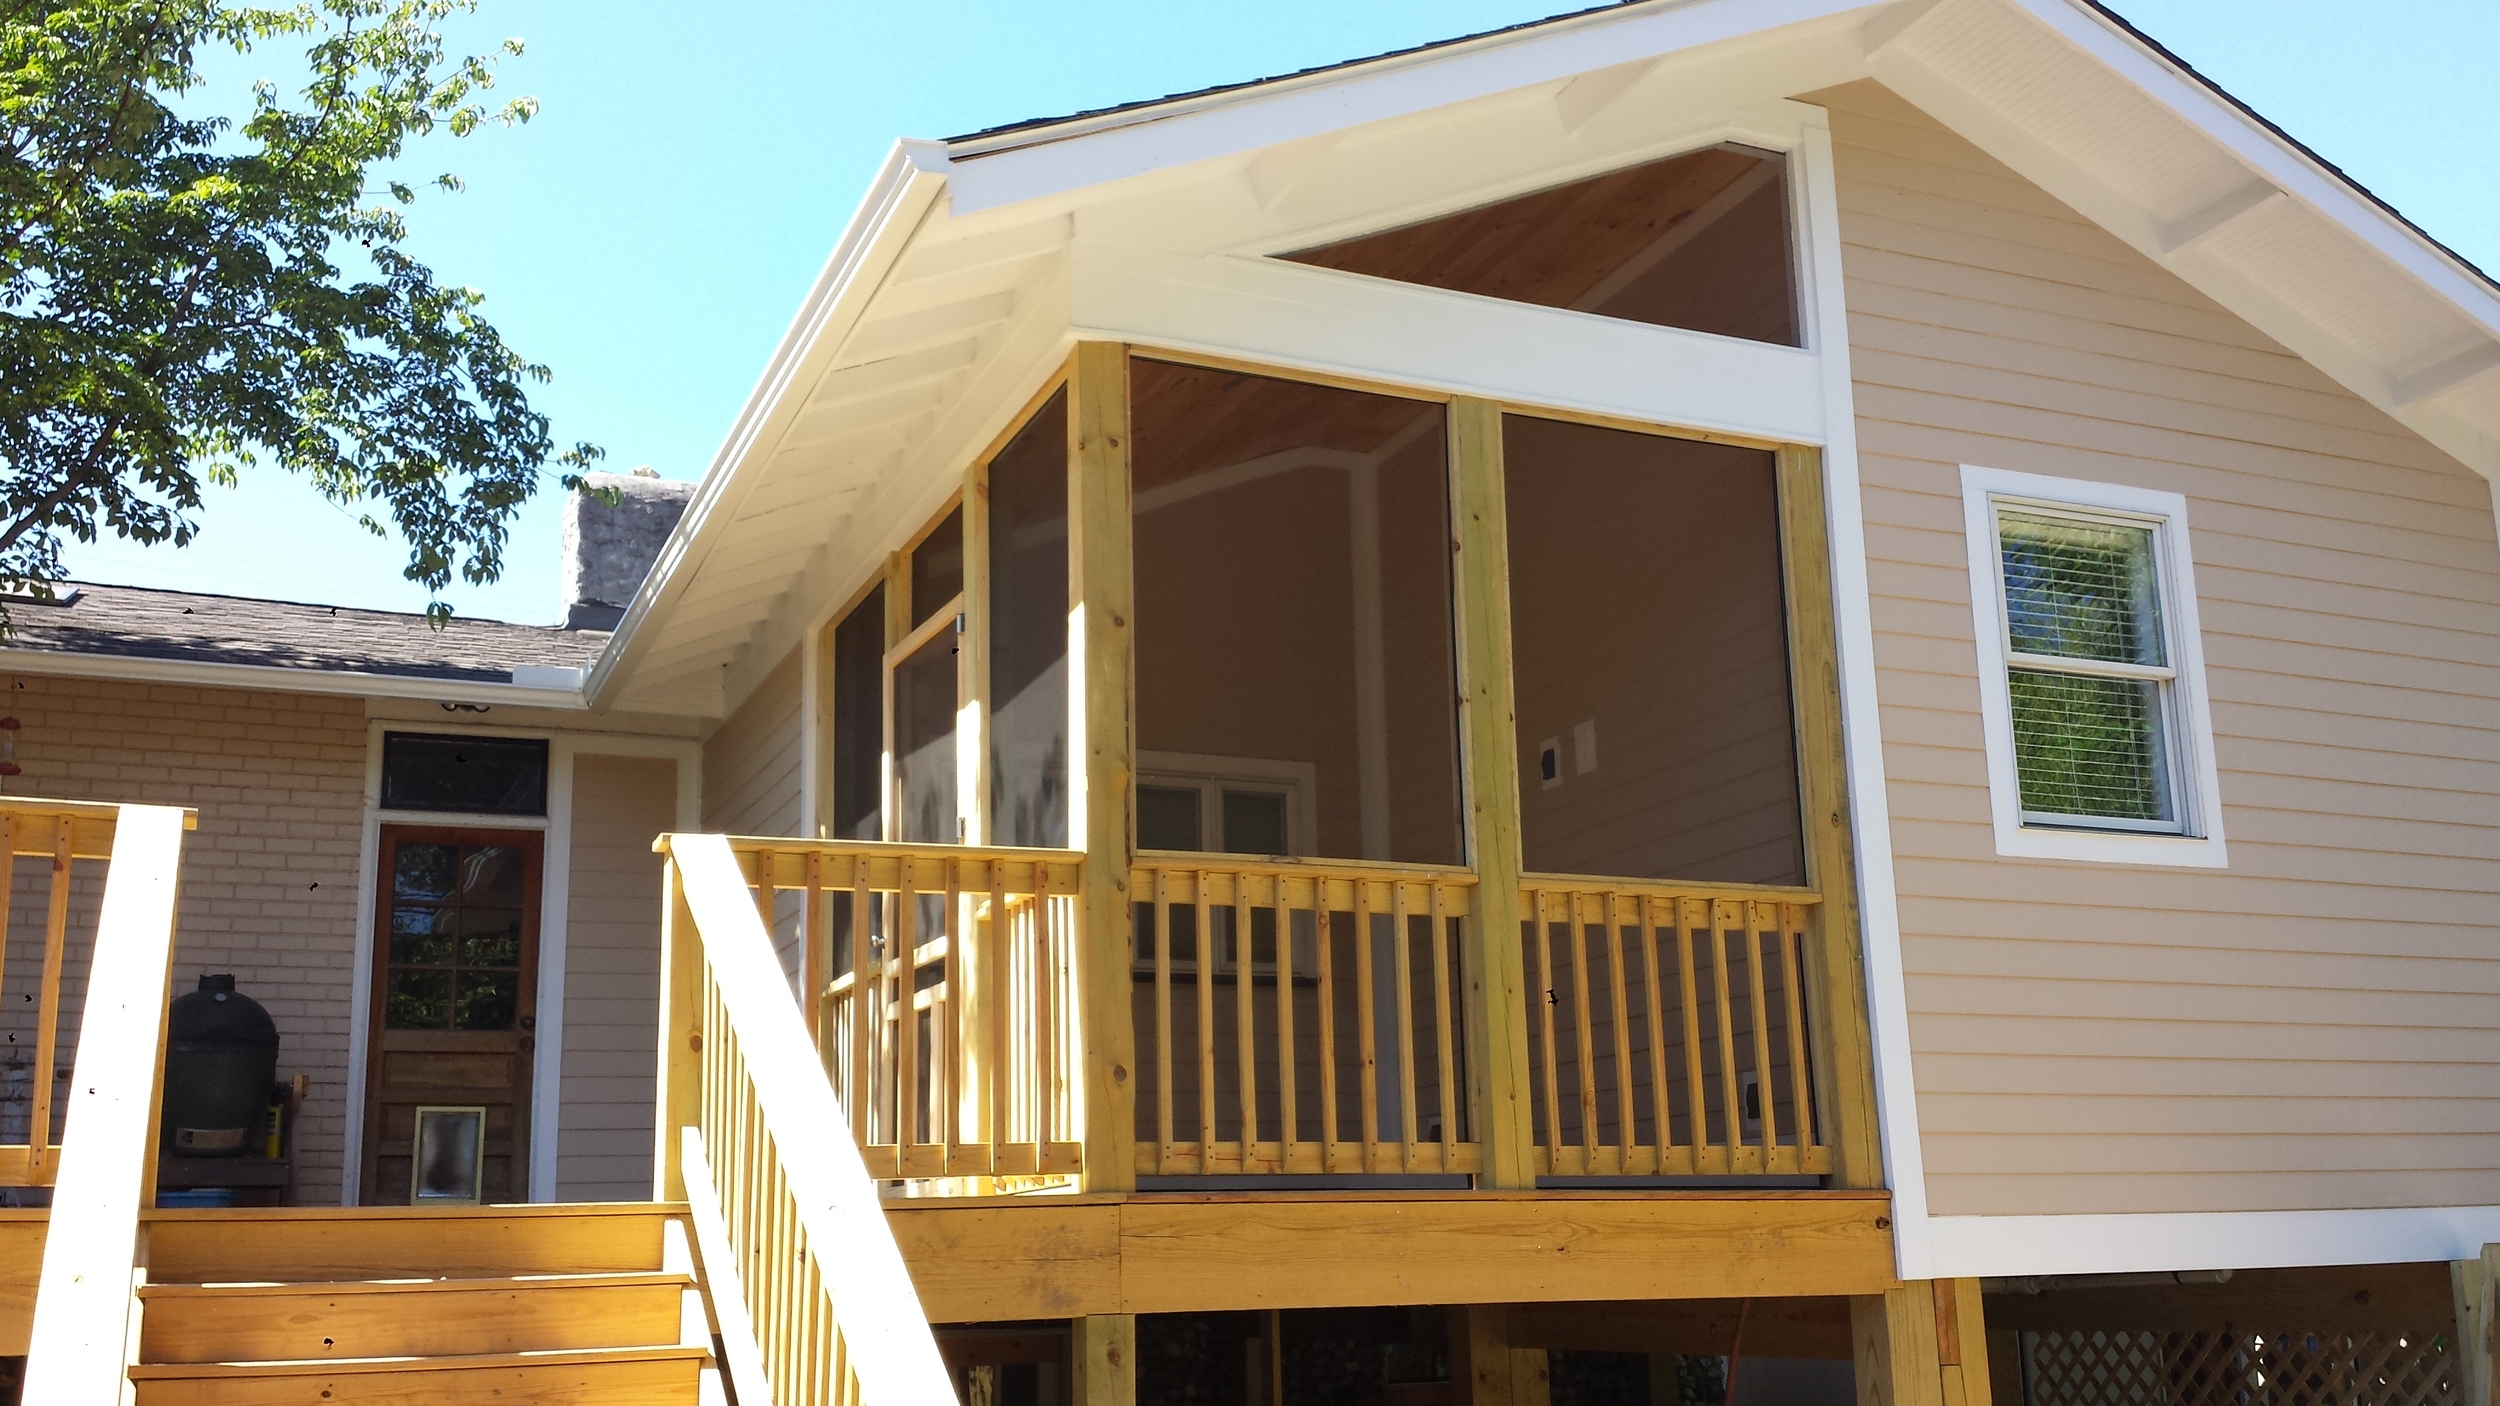 Custom deck and screened porch complete this north Chattanooga renovation.jpg